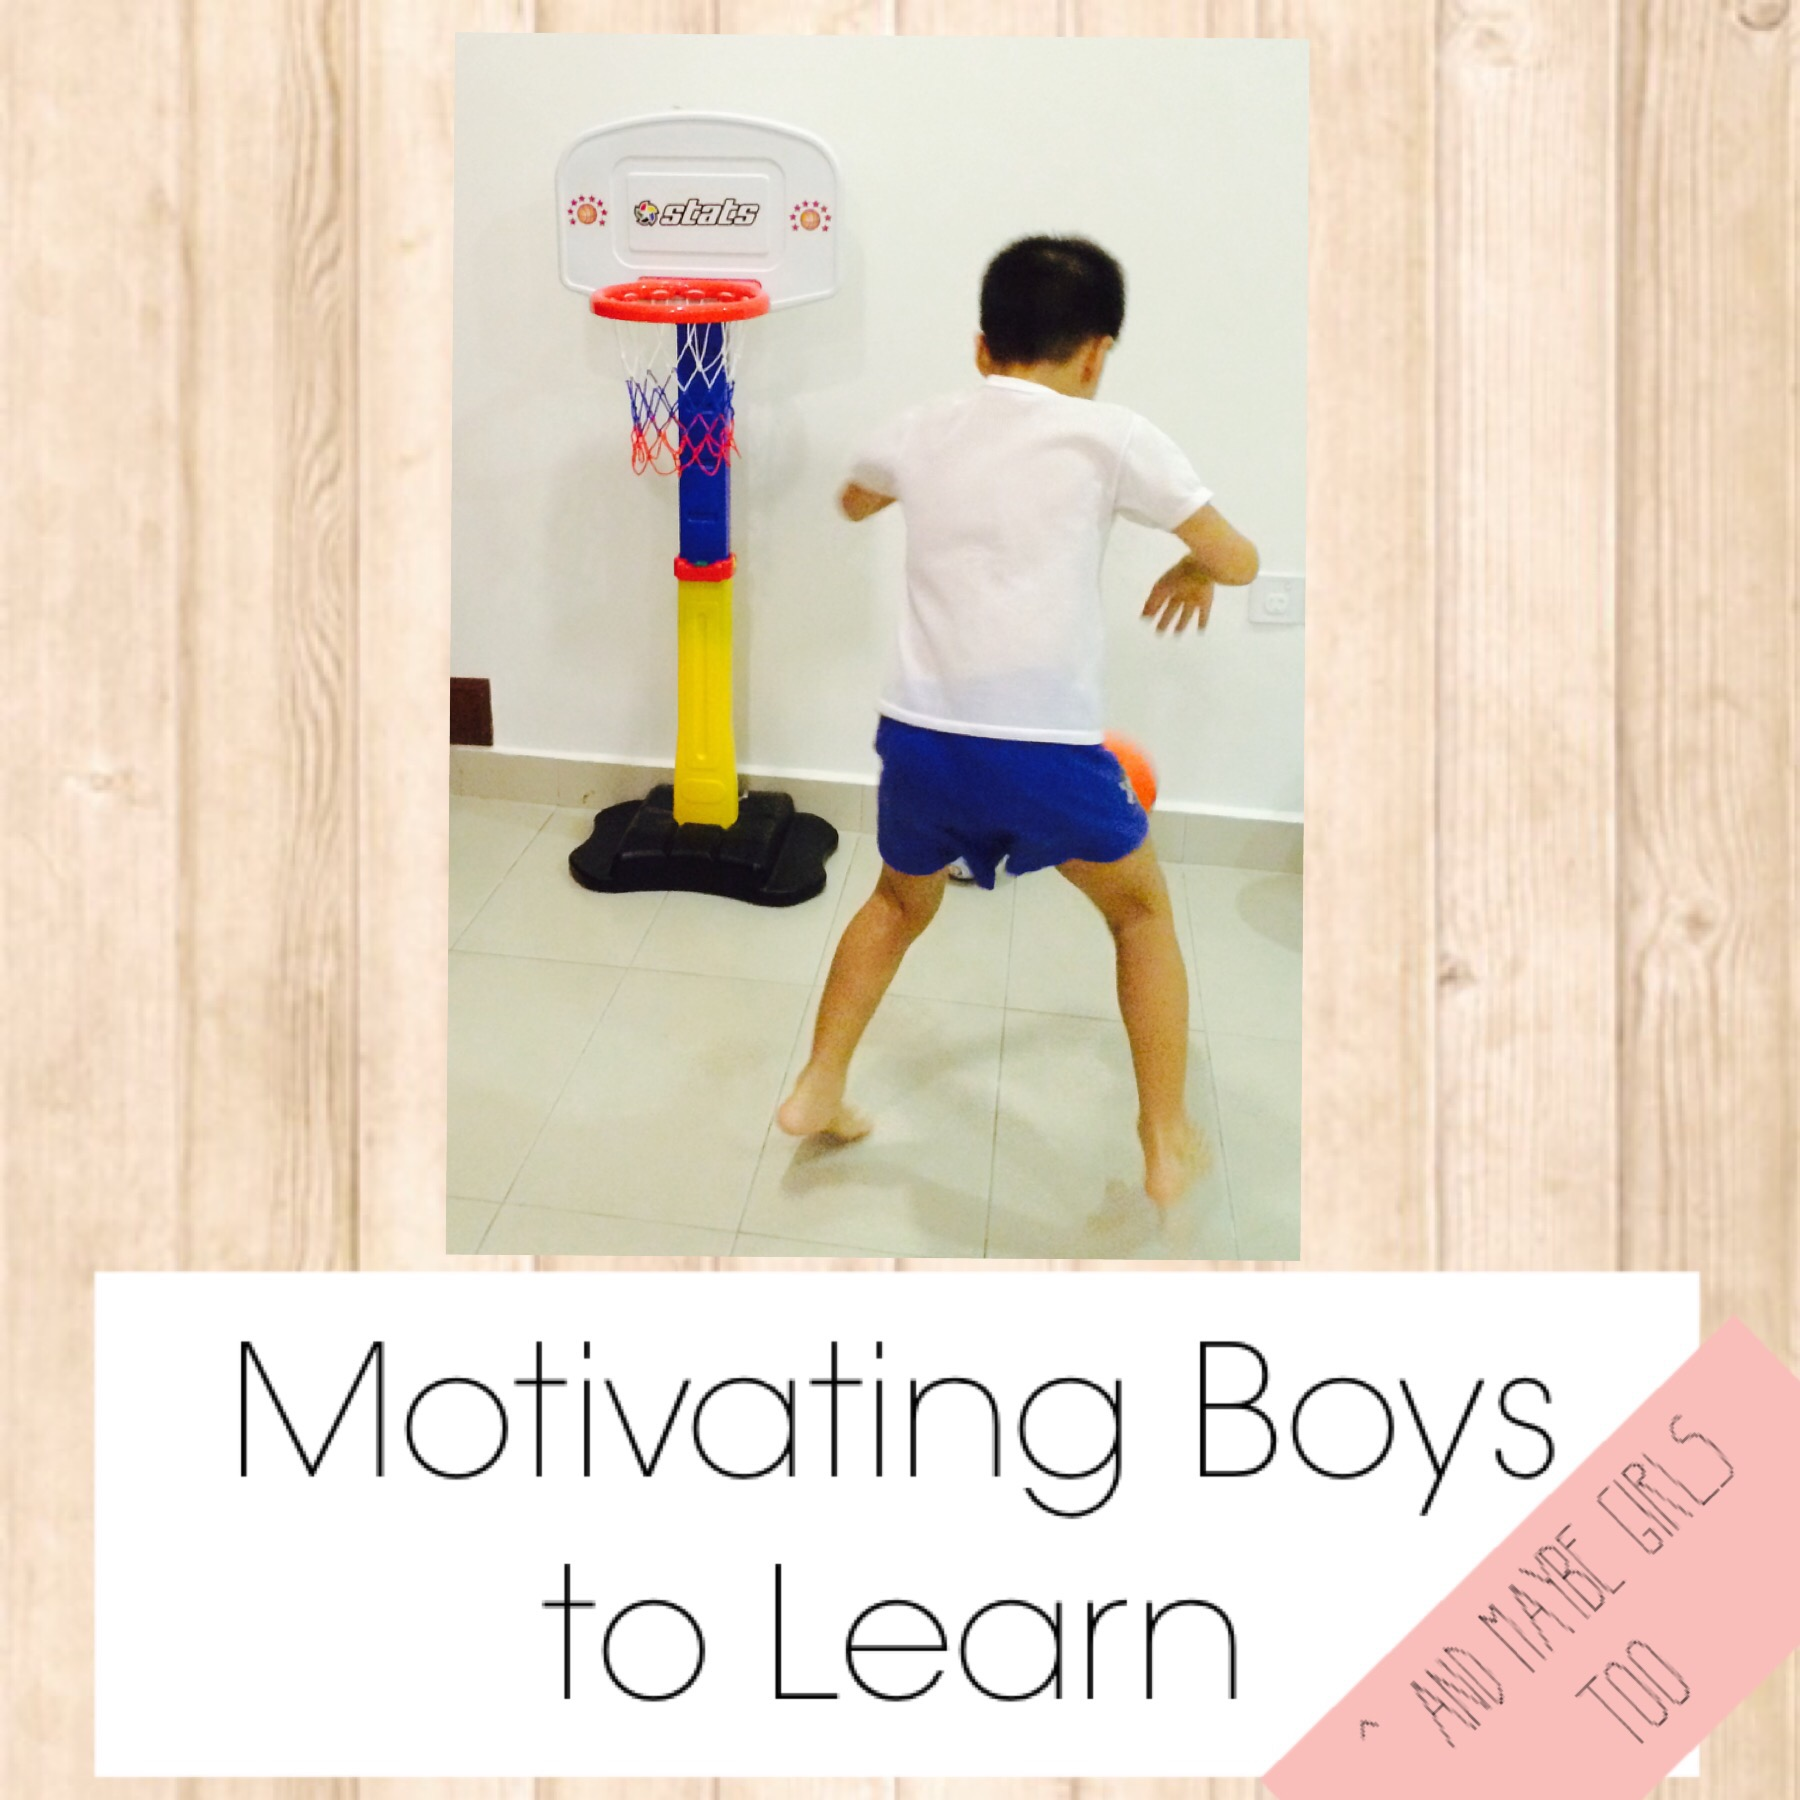 motivating boys to learn